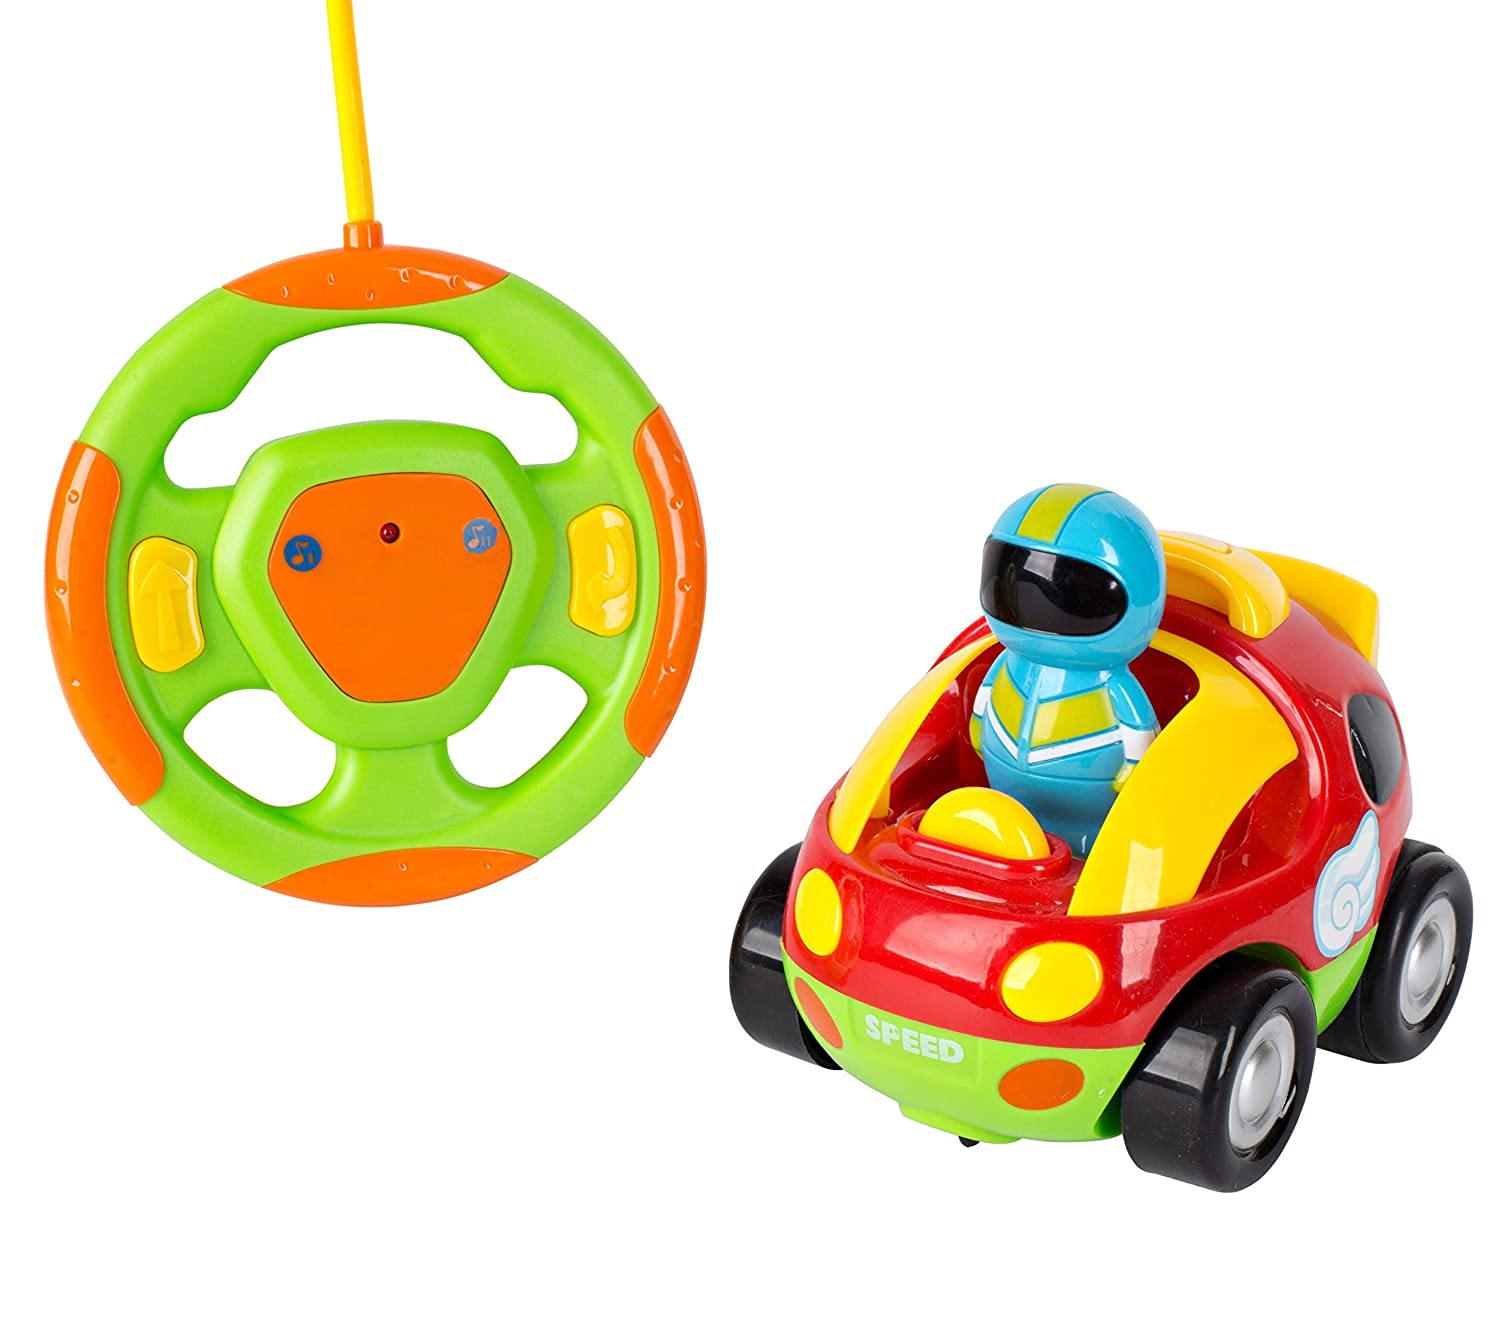 amazon com kids toy remote control race car cartoon rc car with